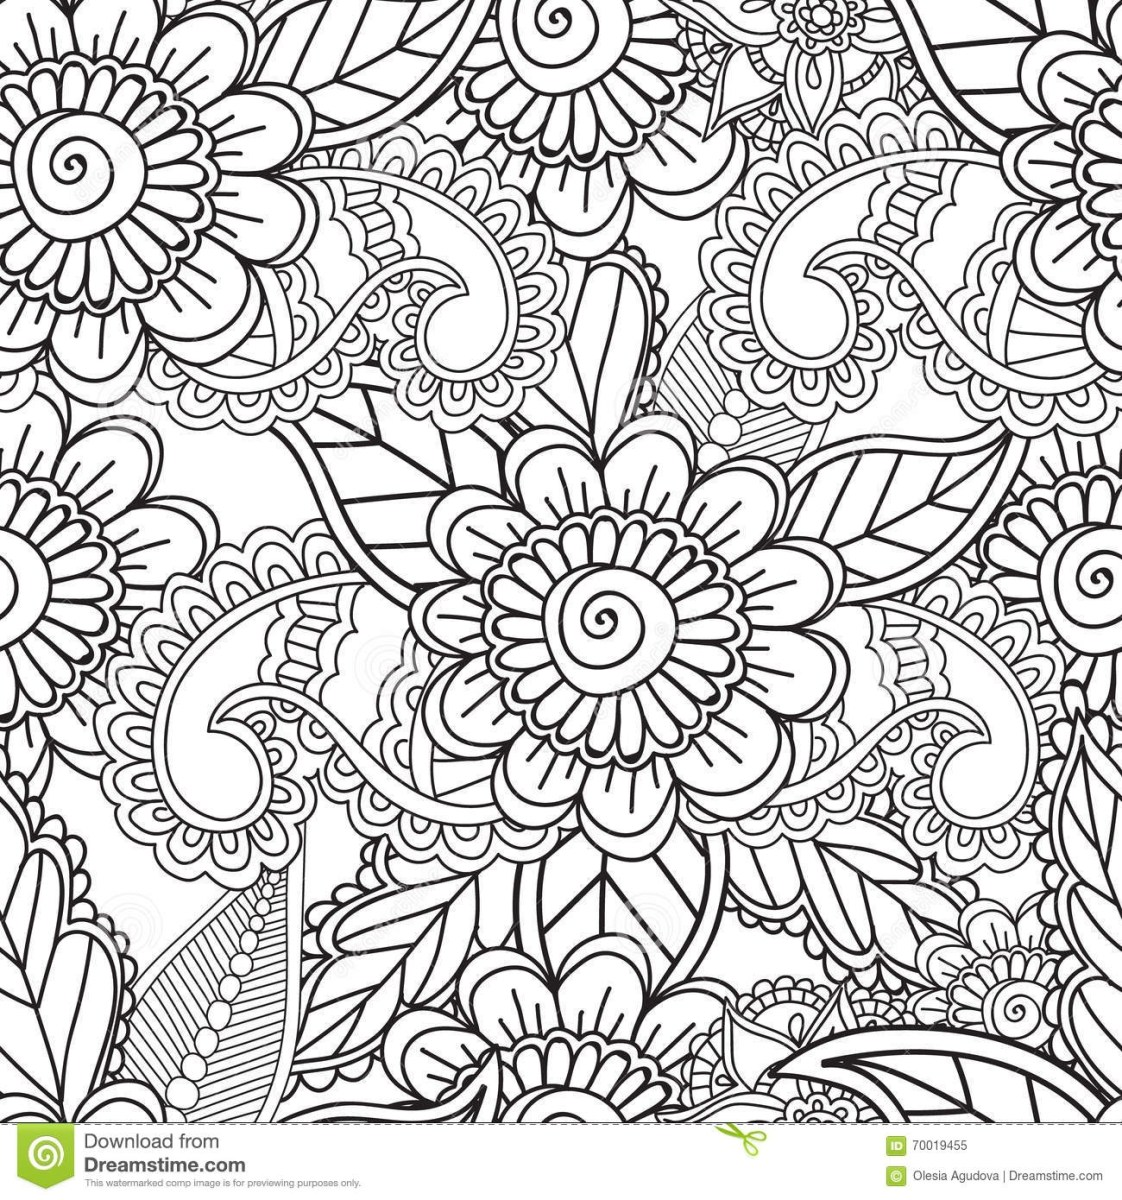 Paisley Coloring Pages Free Printable Paisley Coloring Pages At Getdrawings Free For Birijus Com